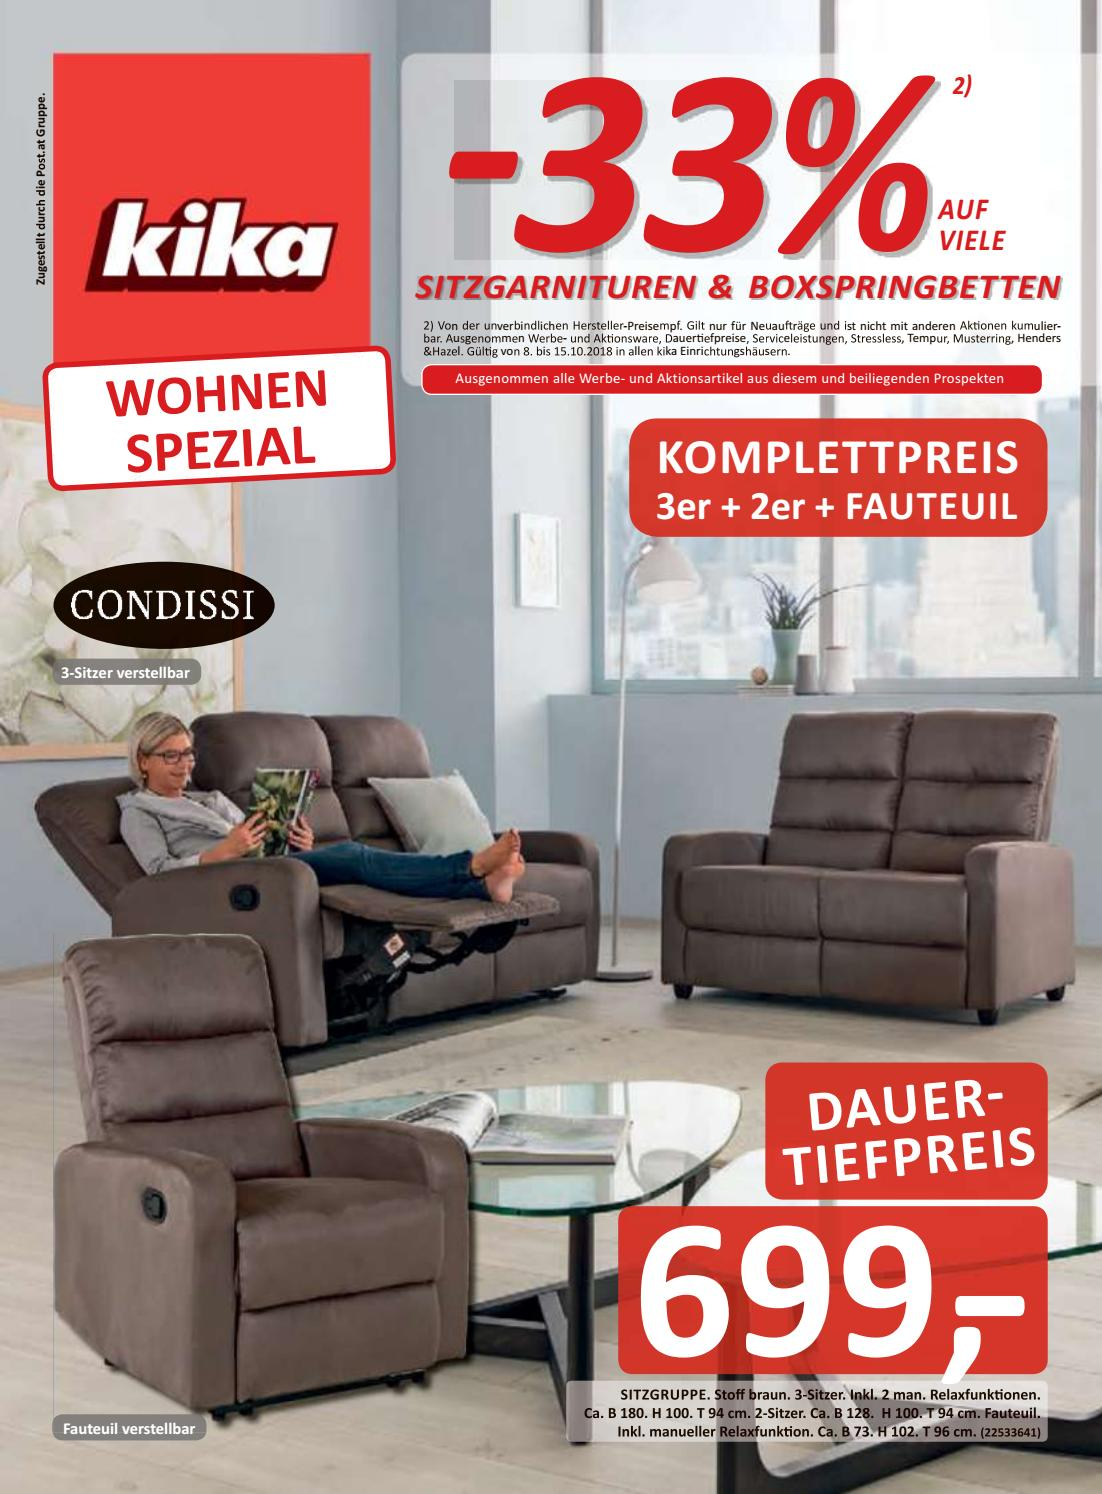 Stressless Kika Kika Kw41 By Russmedia Digital Gmbh Issuu